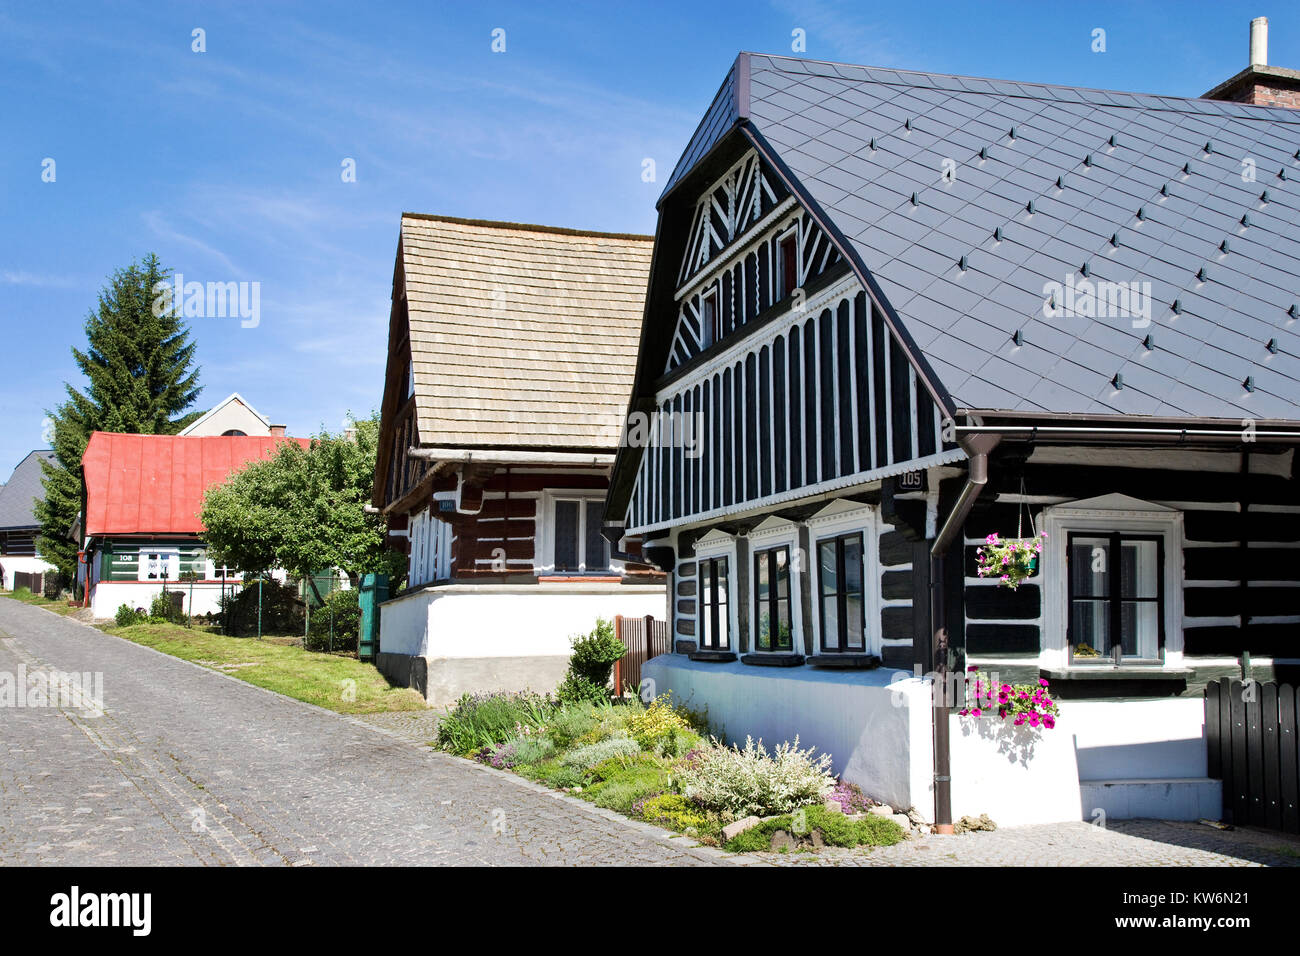 CZECH REPUBLIC, JILEMNICE - APR 19, 2010: traditional architecture from 1788  in Curious street (Zvedava ulicka), - Stock Image